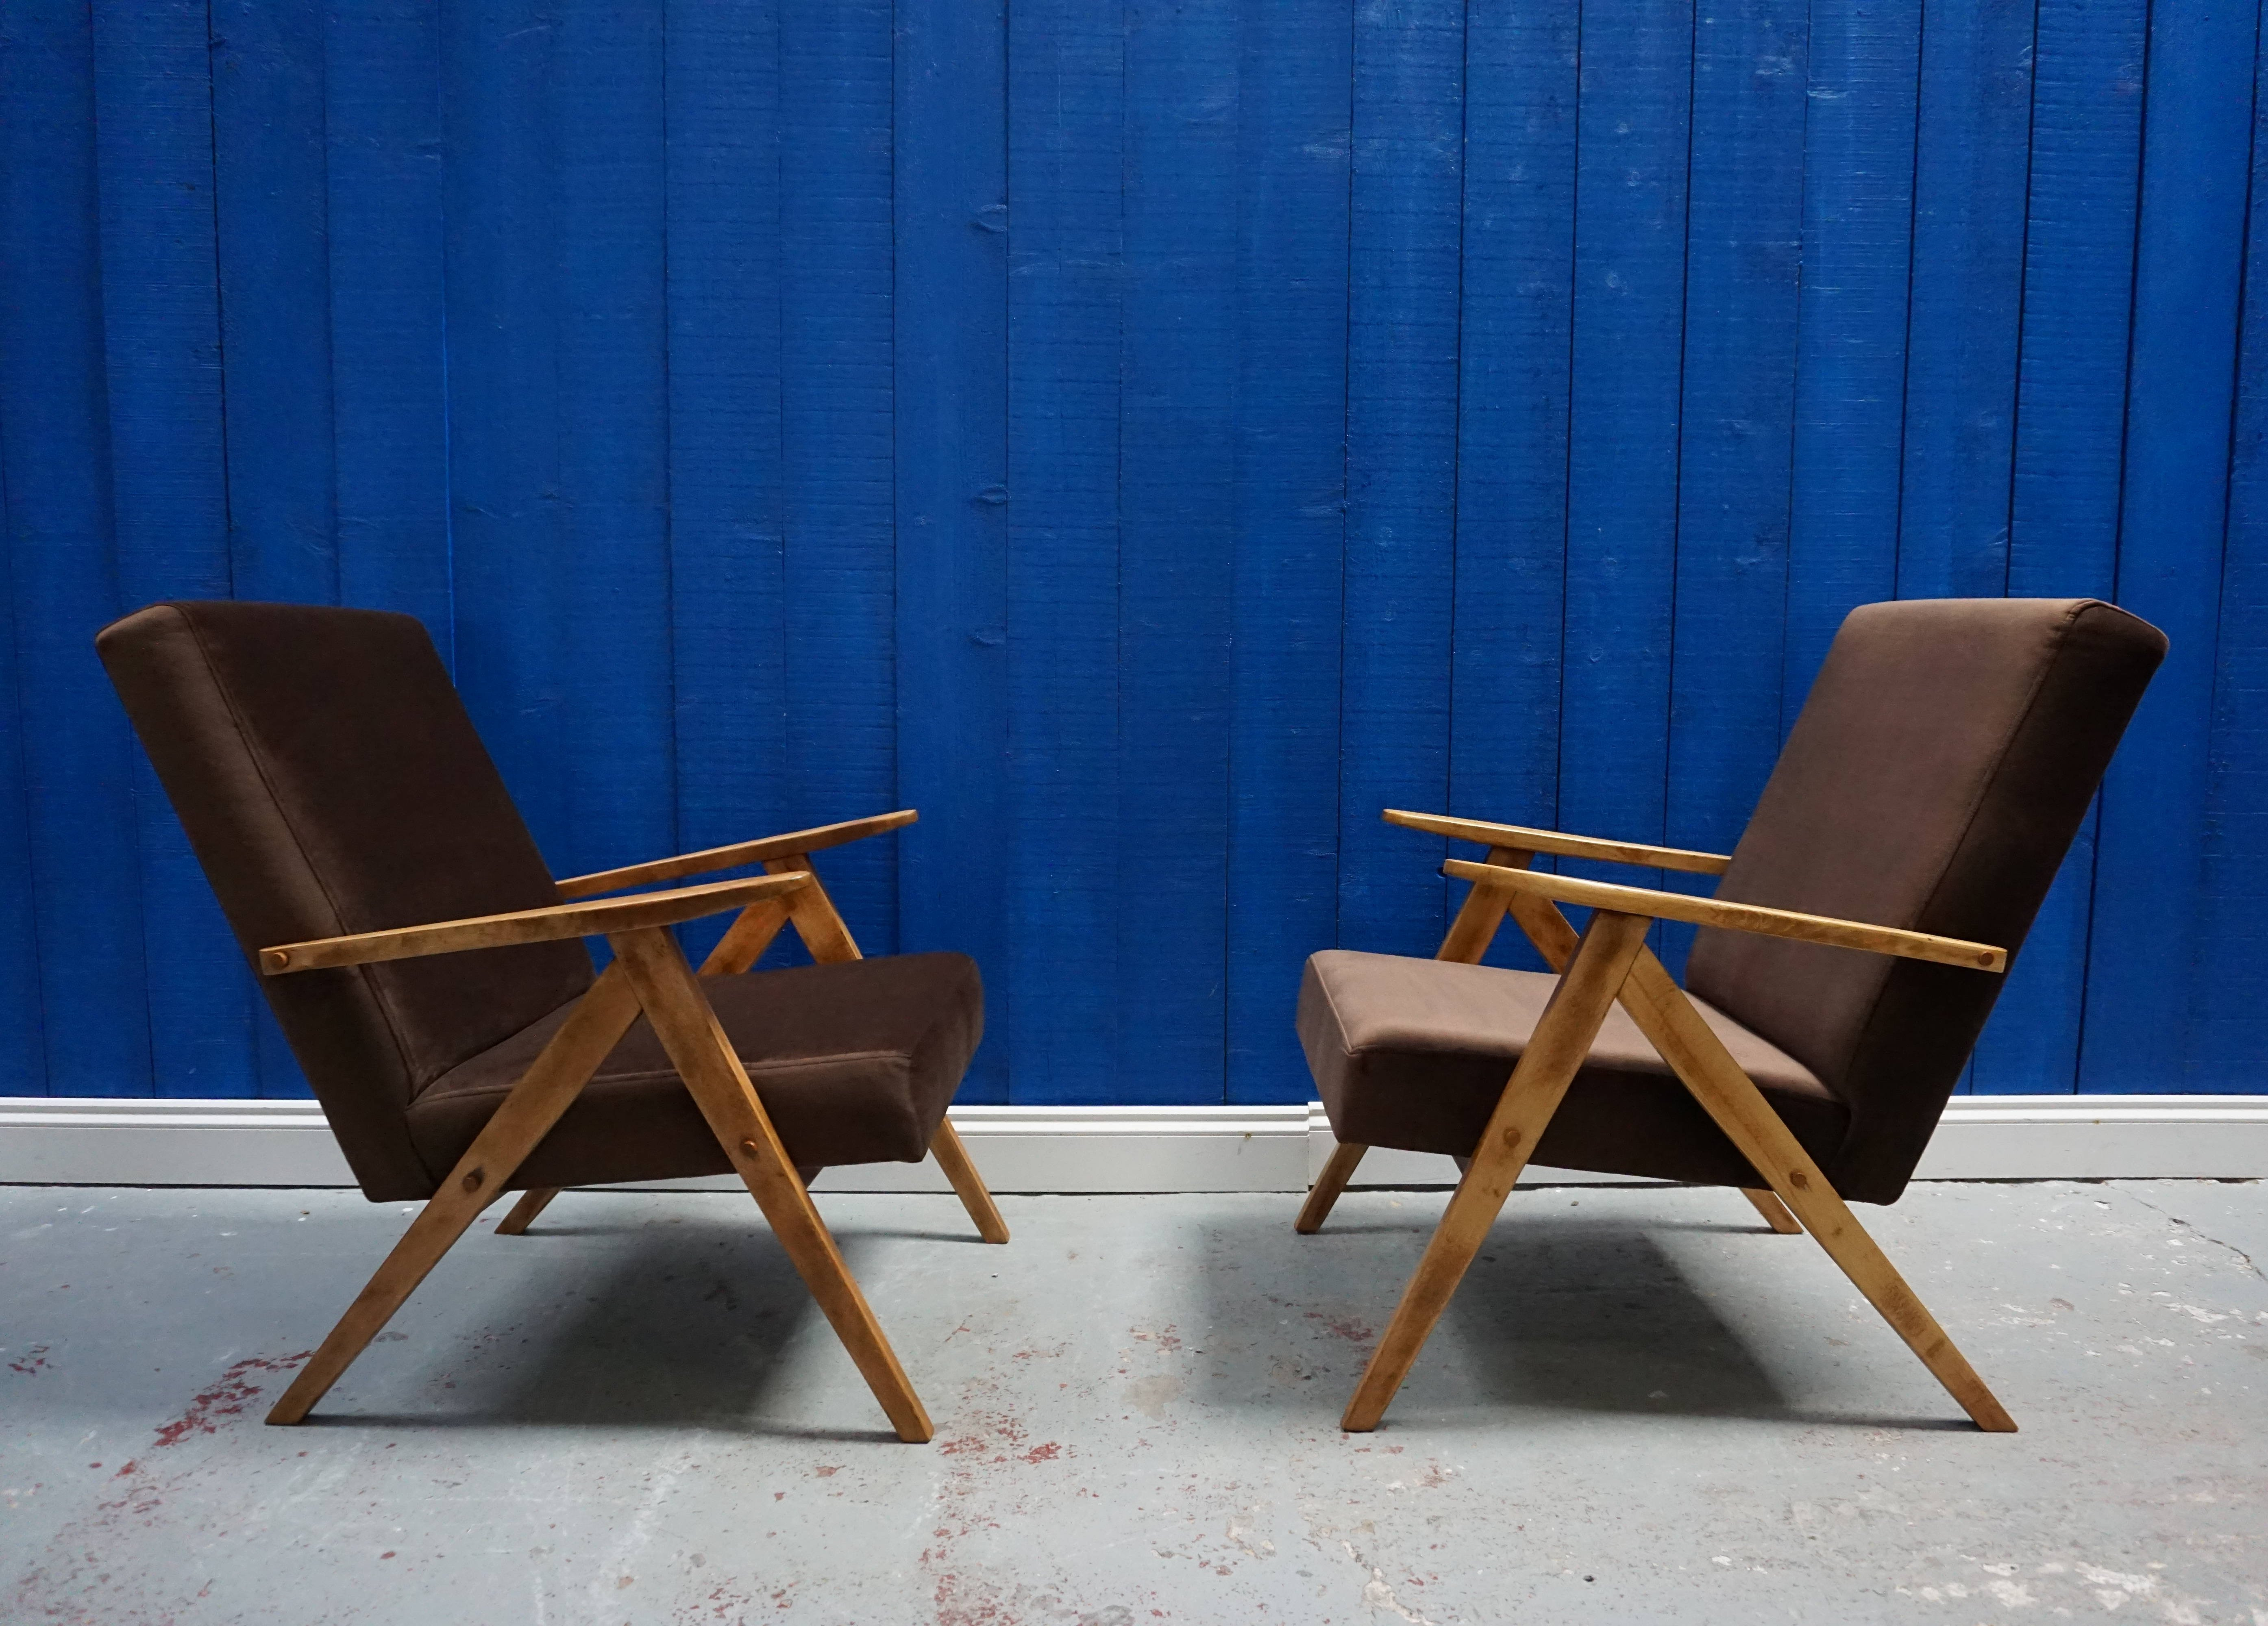 Swell Pair Of Model B 310 Var Mid Century Modern Easy Chairs In Brown Velvet 1960S Beatyapartments Chair Design Images Beatyapartmentscom